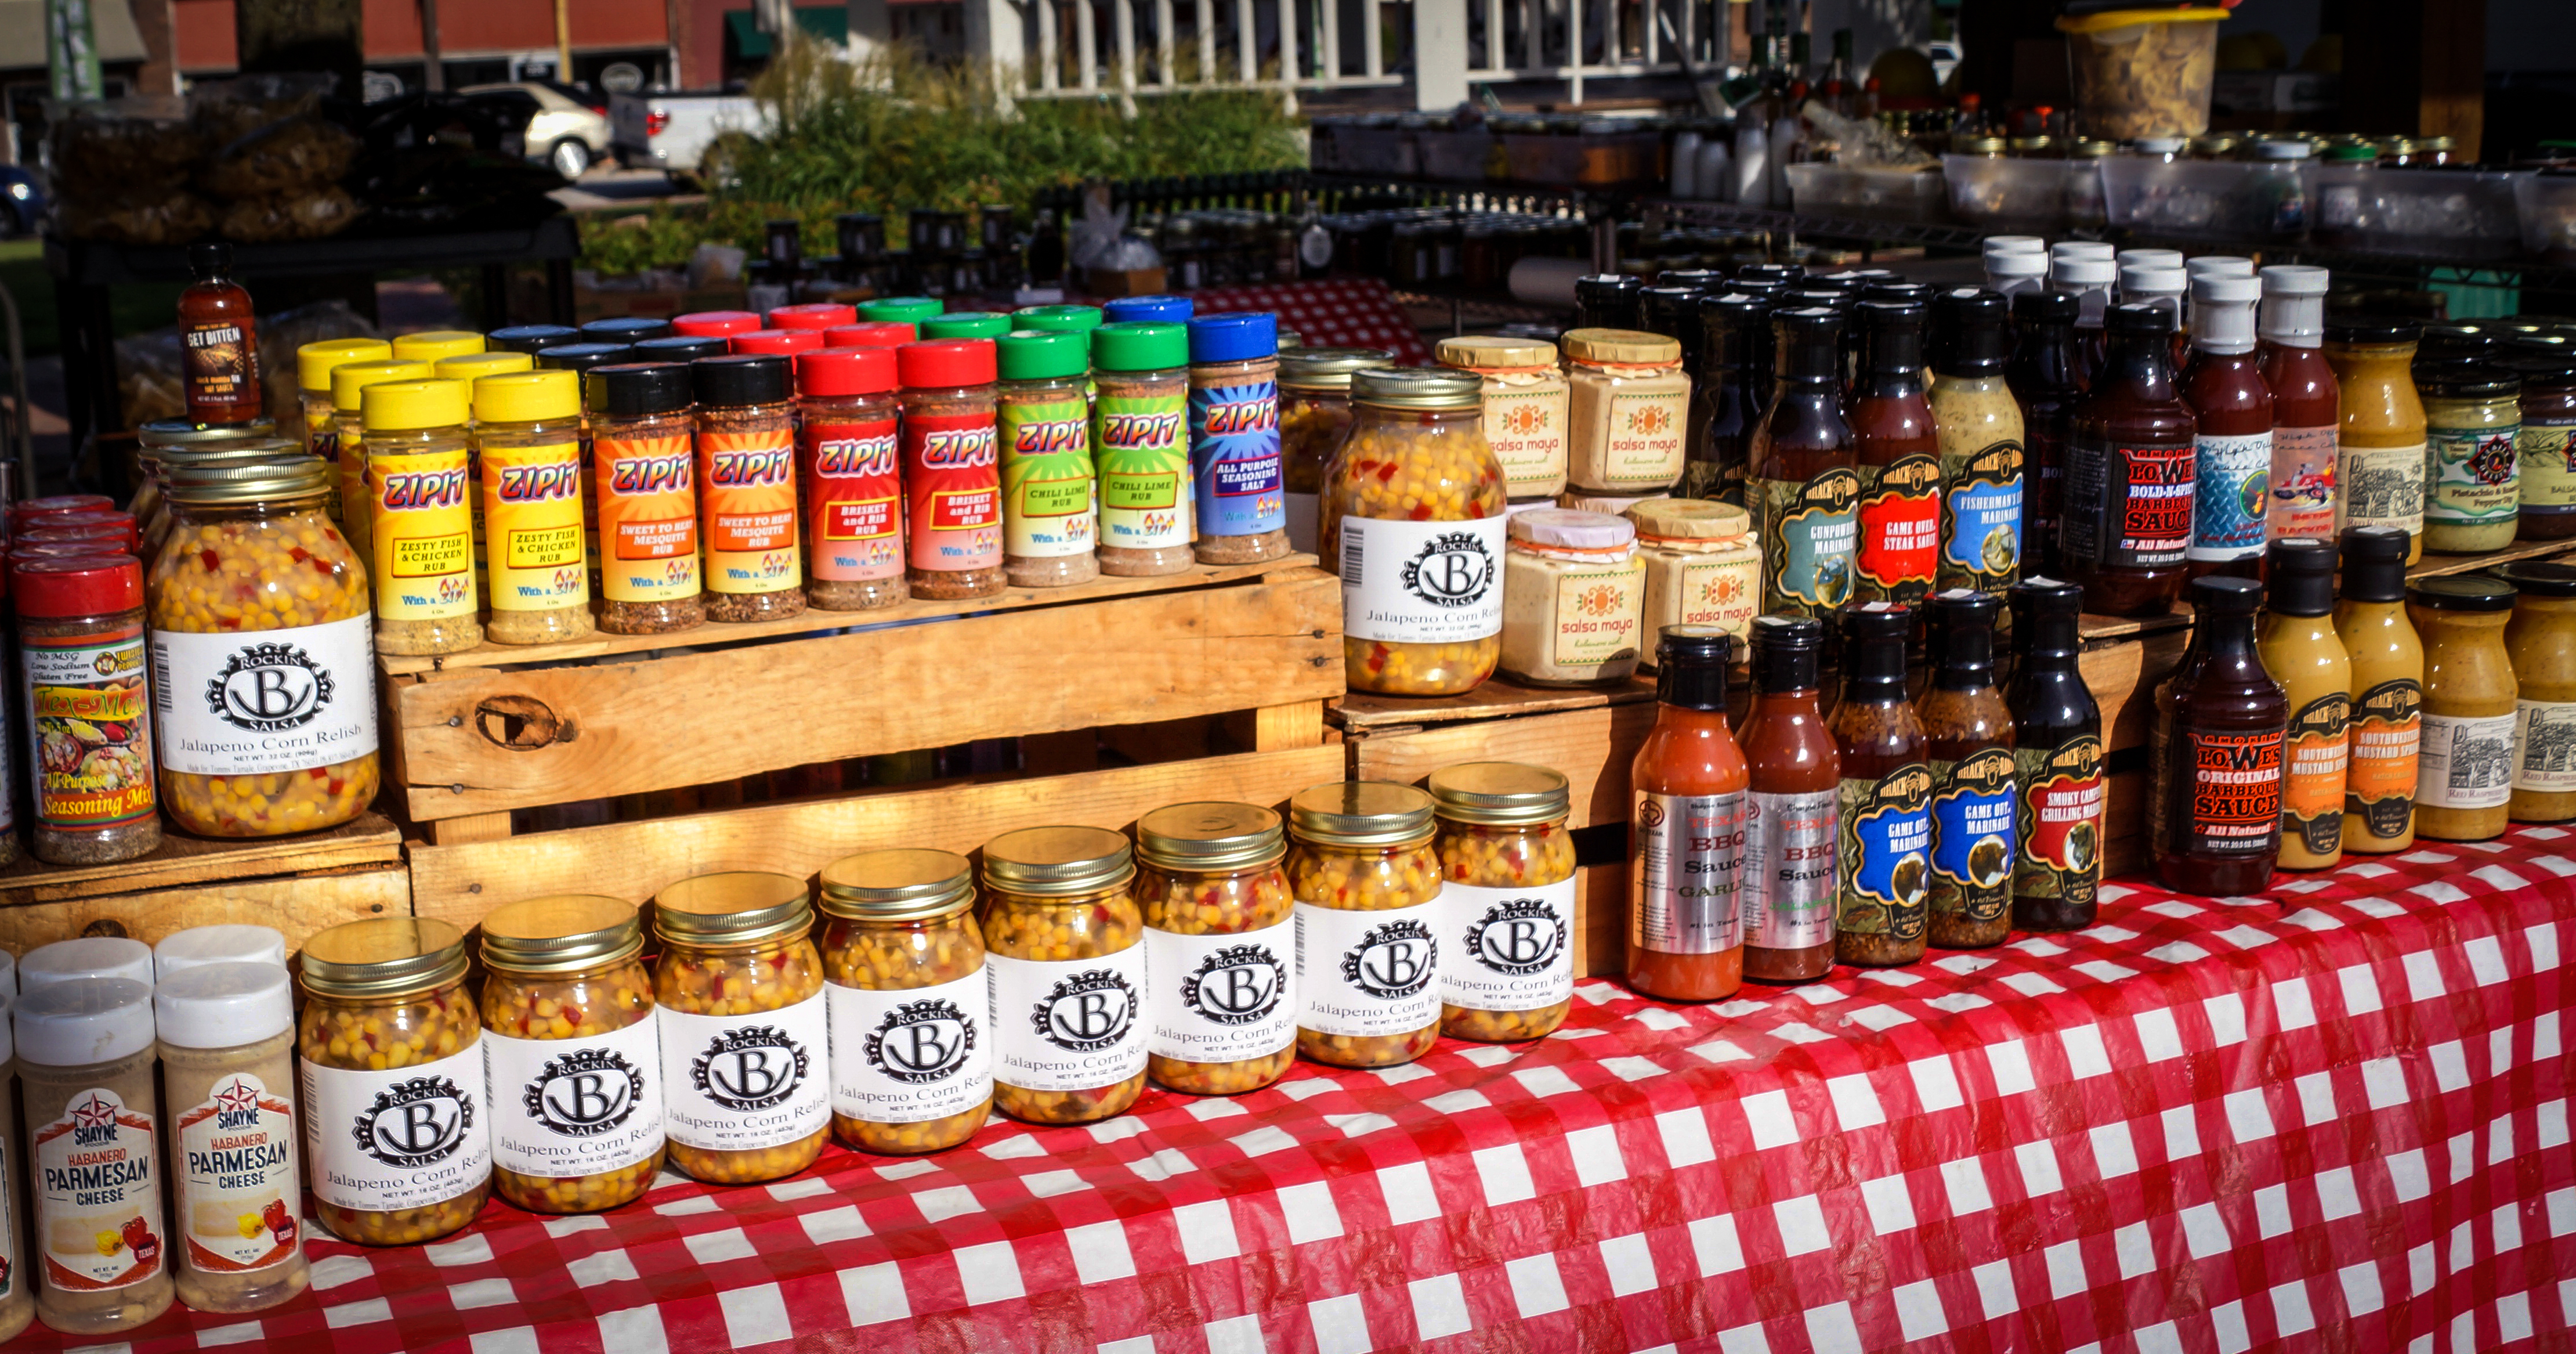 Visitors can find canned products, sauces, seasonings and more.